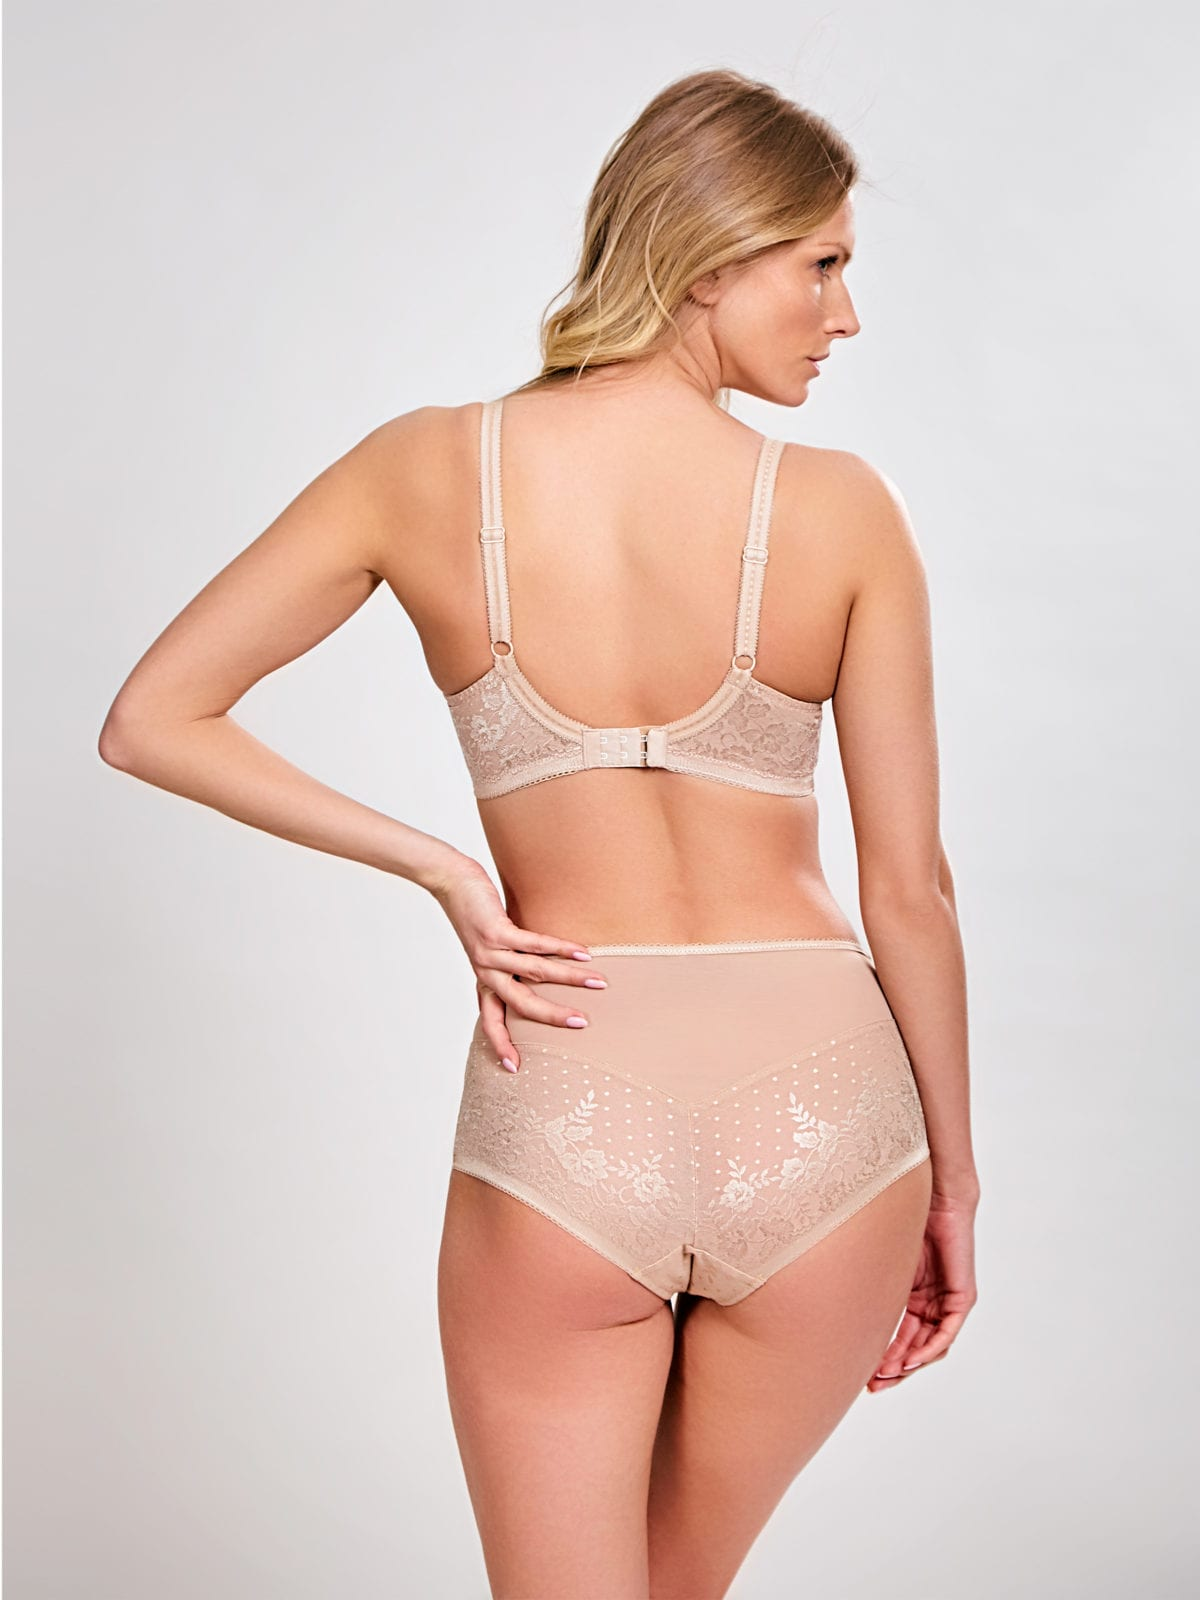 Бюстгальтеры 7751_809_Olivia Balconnet Bra Honey Back Trade 4